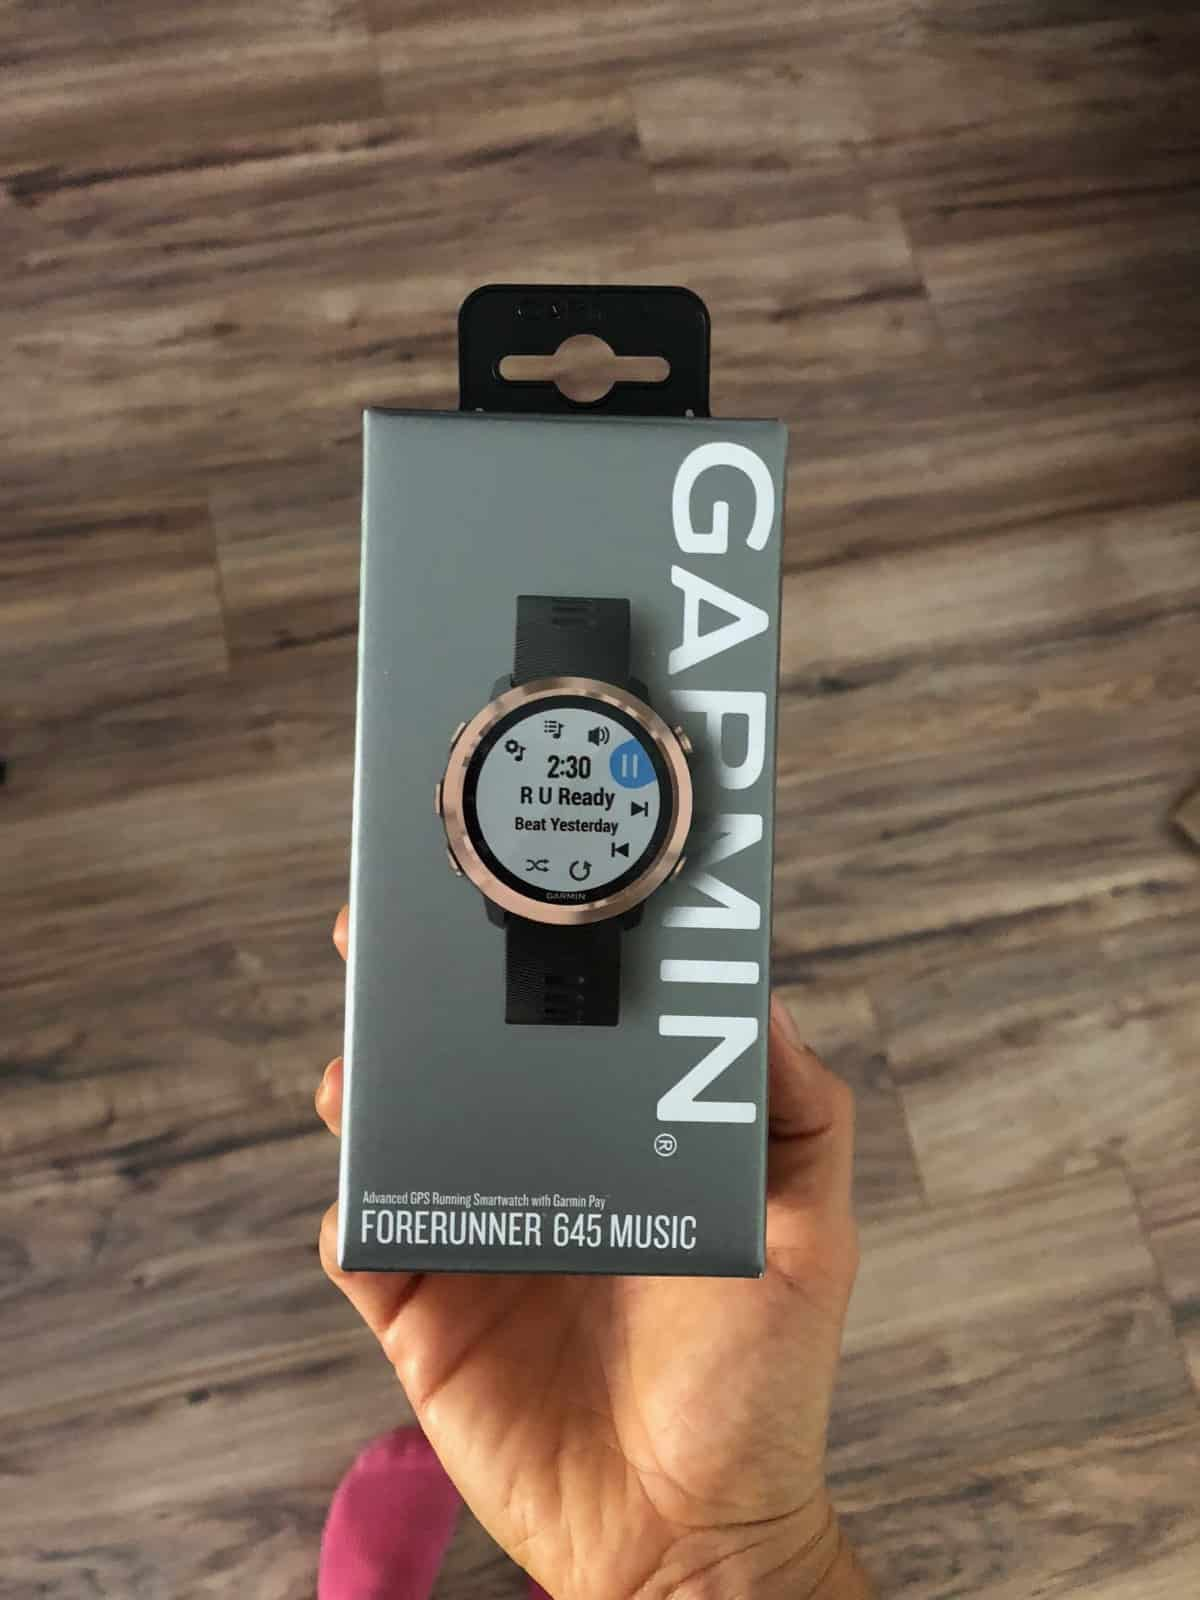 Un-open box of a Garmin Forerunner 645. The watch is black and gold.